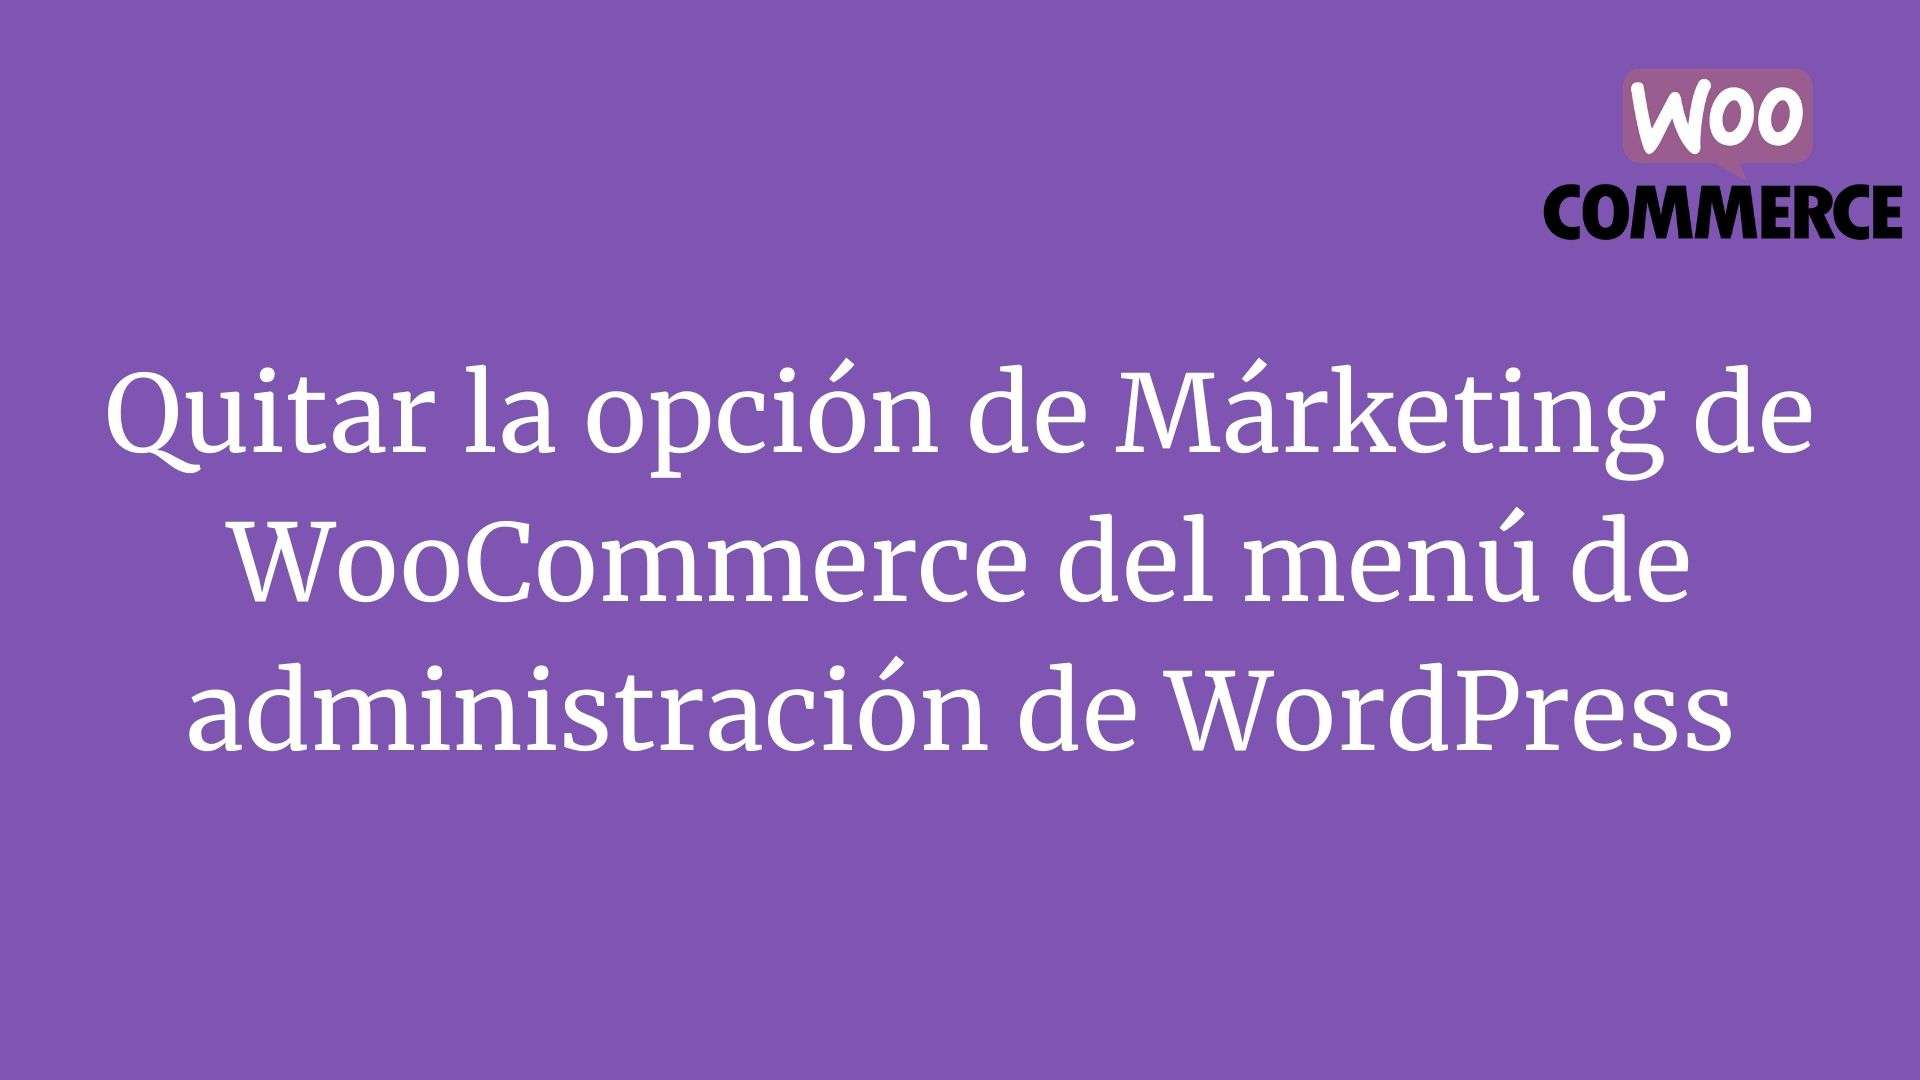 Quitar la opcion de Marketing de WooCommerce del menu de administracion de WordPress